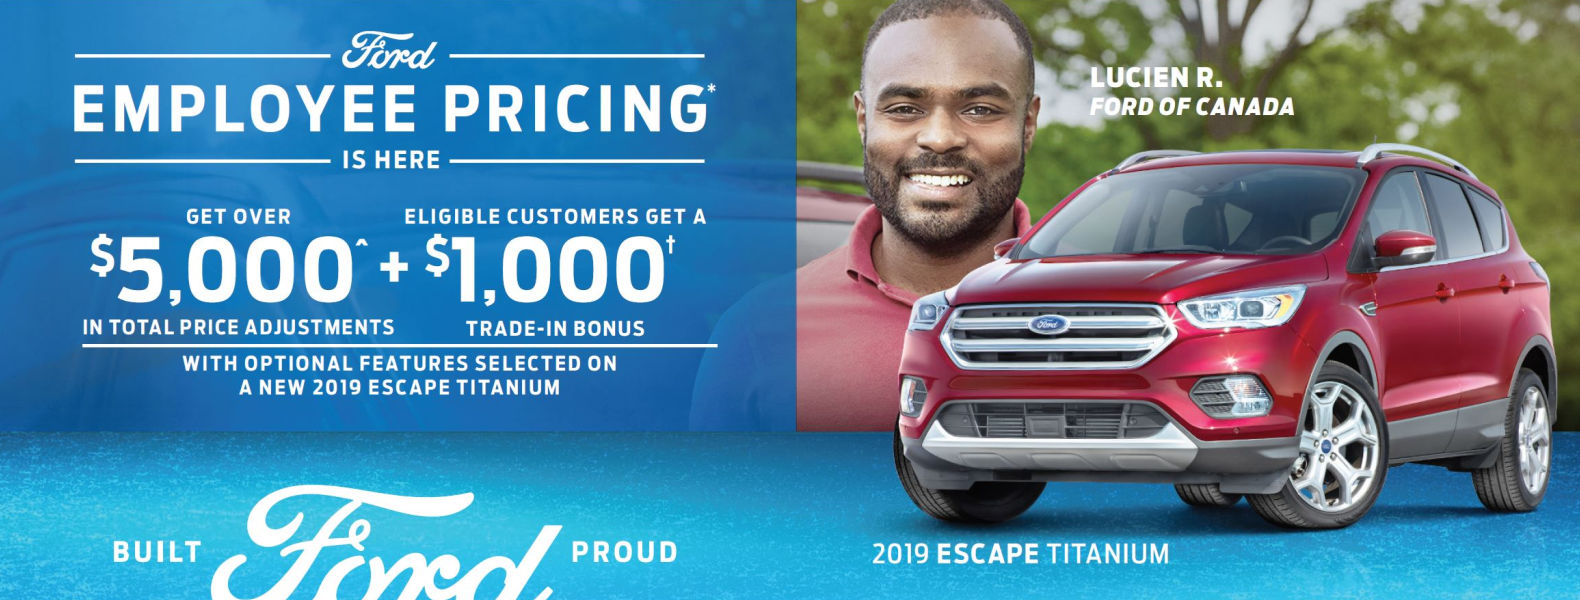 Employee Pricing Ford Escape Smiths Falls